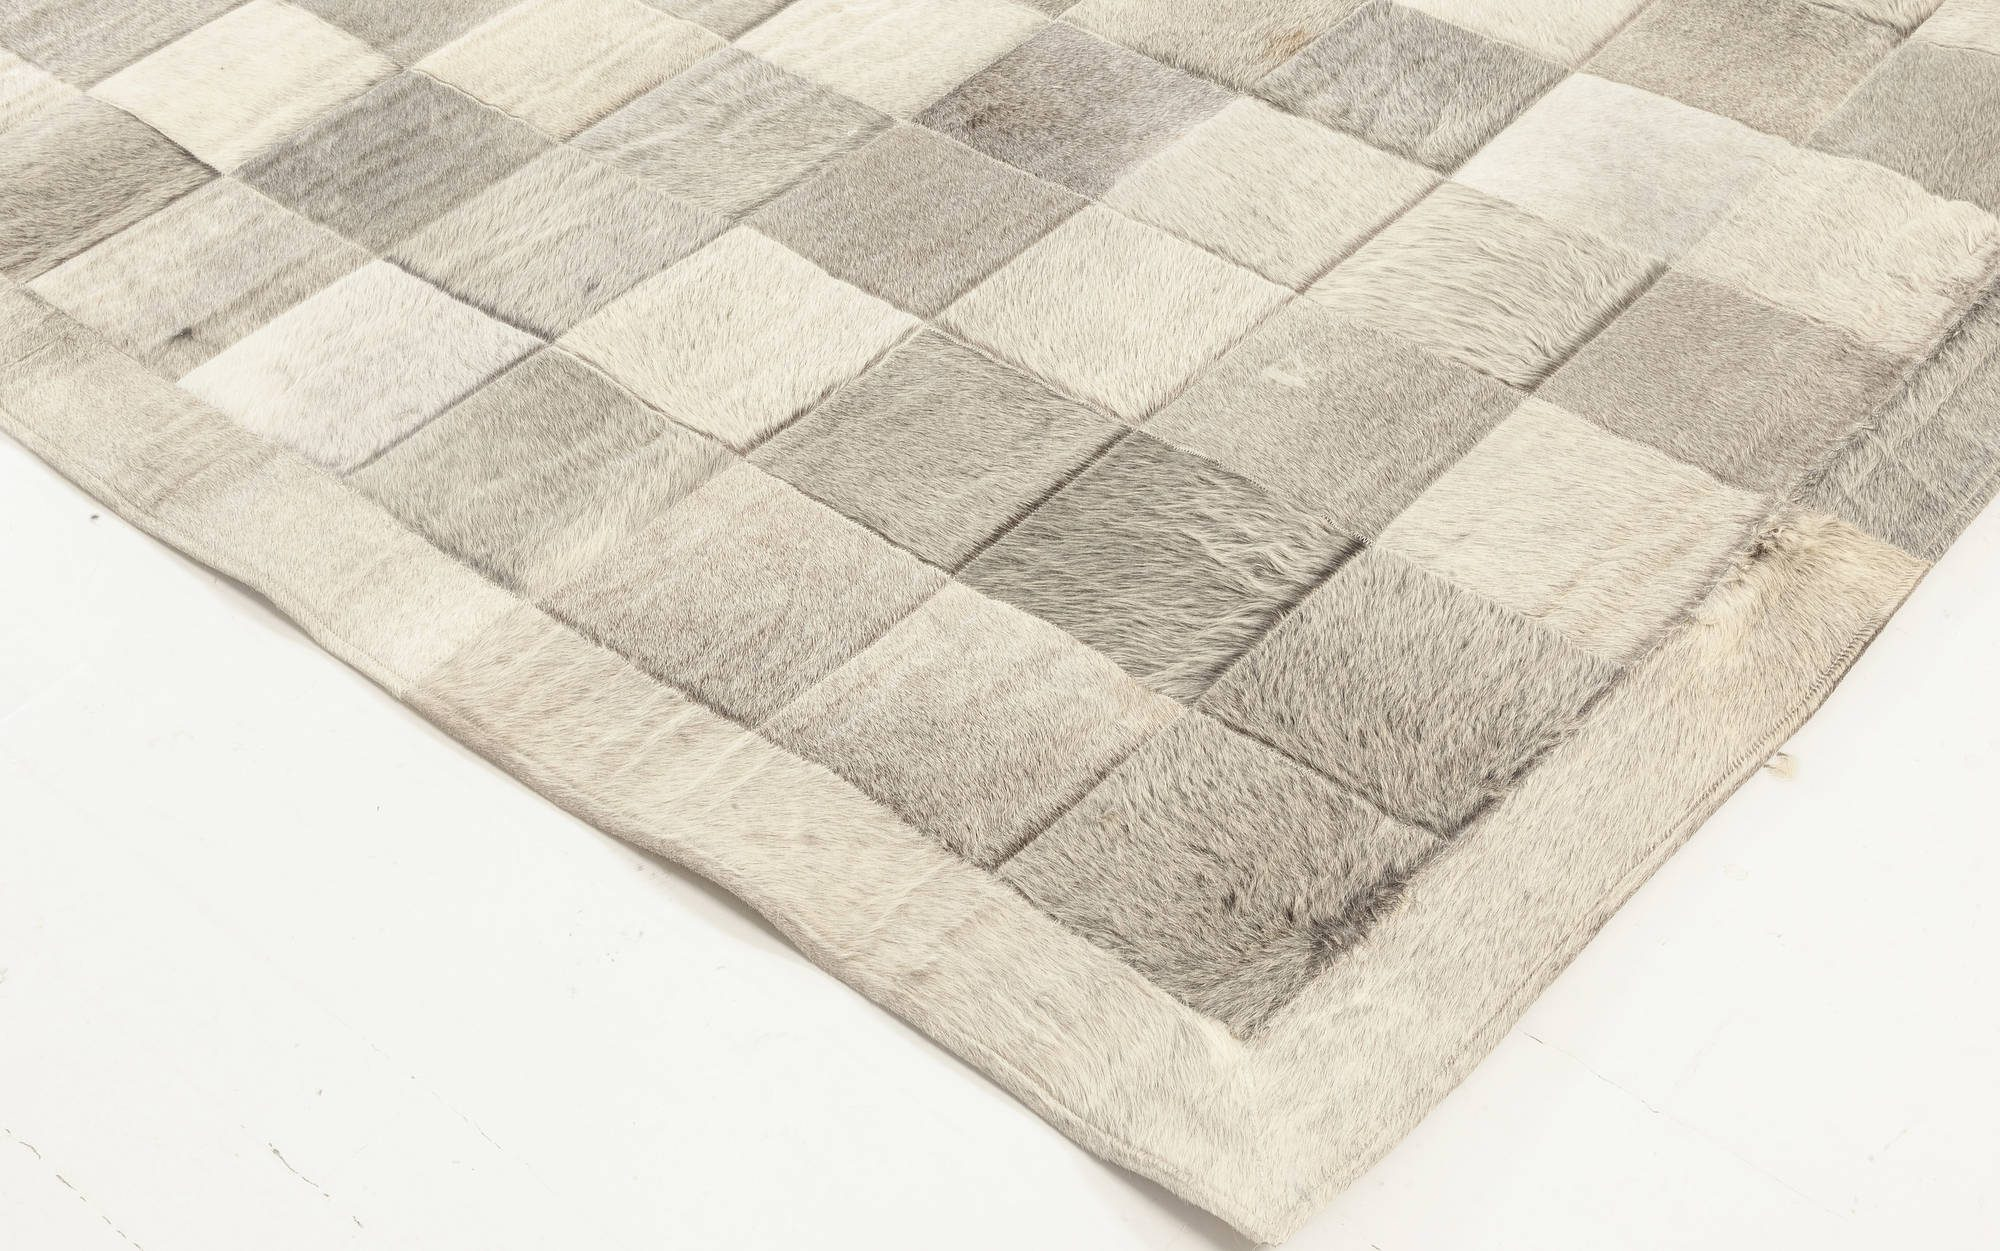 Hair-on-hide Contemporary Geometric Gray Leather Runner N12044